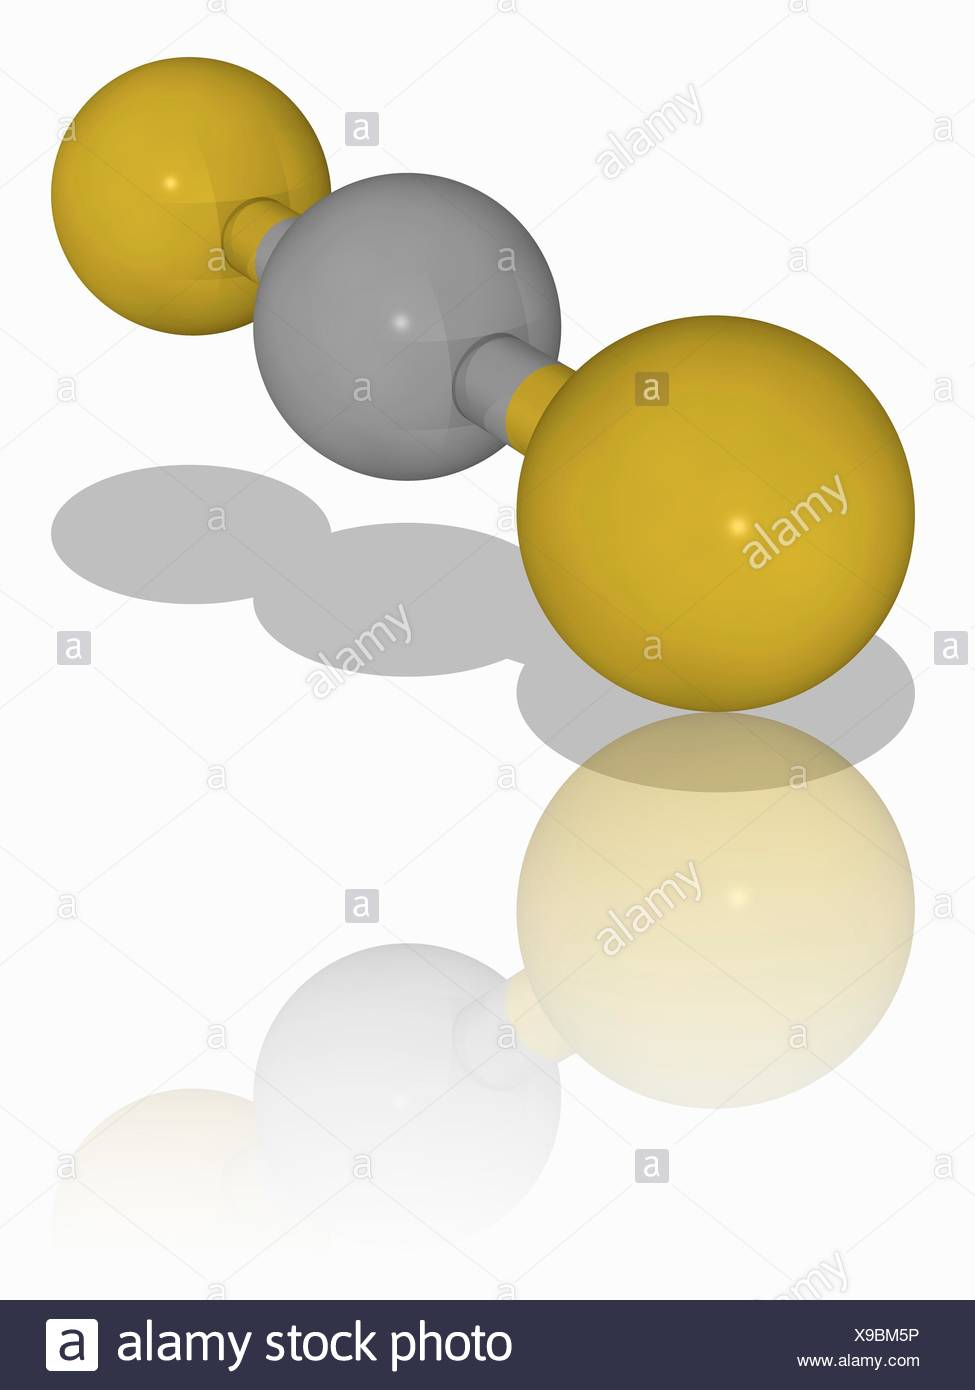 Carbon Disulphide Molecular Model Of The Inorganic Carbon Compound Carbon Disulphide Cs2 This Colourless Liquid Is Used In Organic Chemistry Synthesis And As A Non Polar Solvent In The Chemical Industry Atoms Are